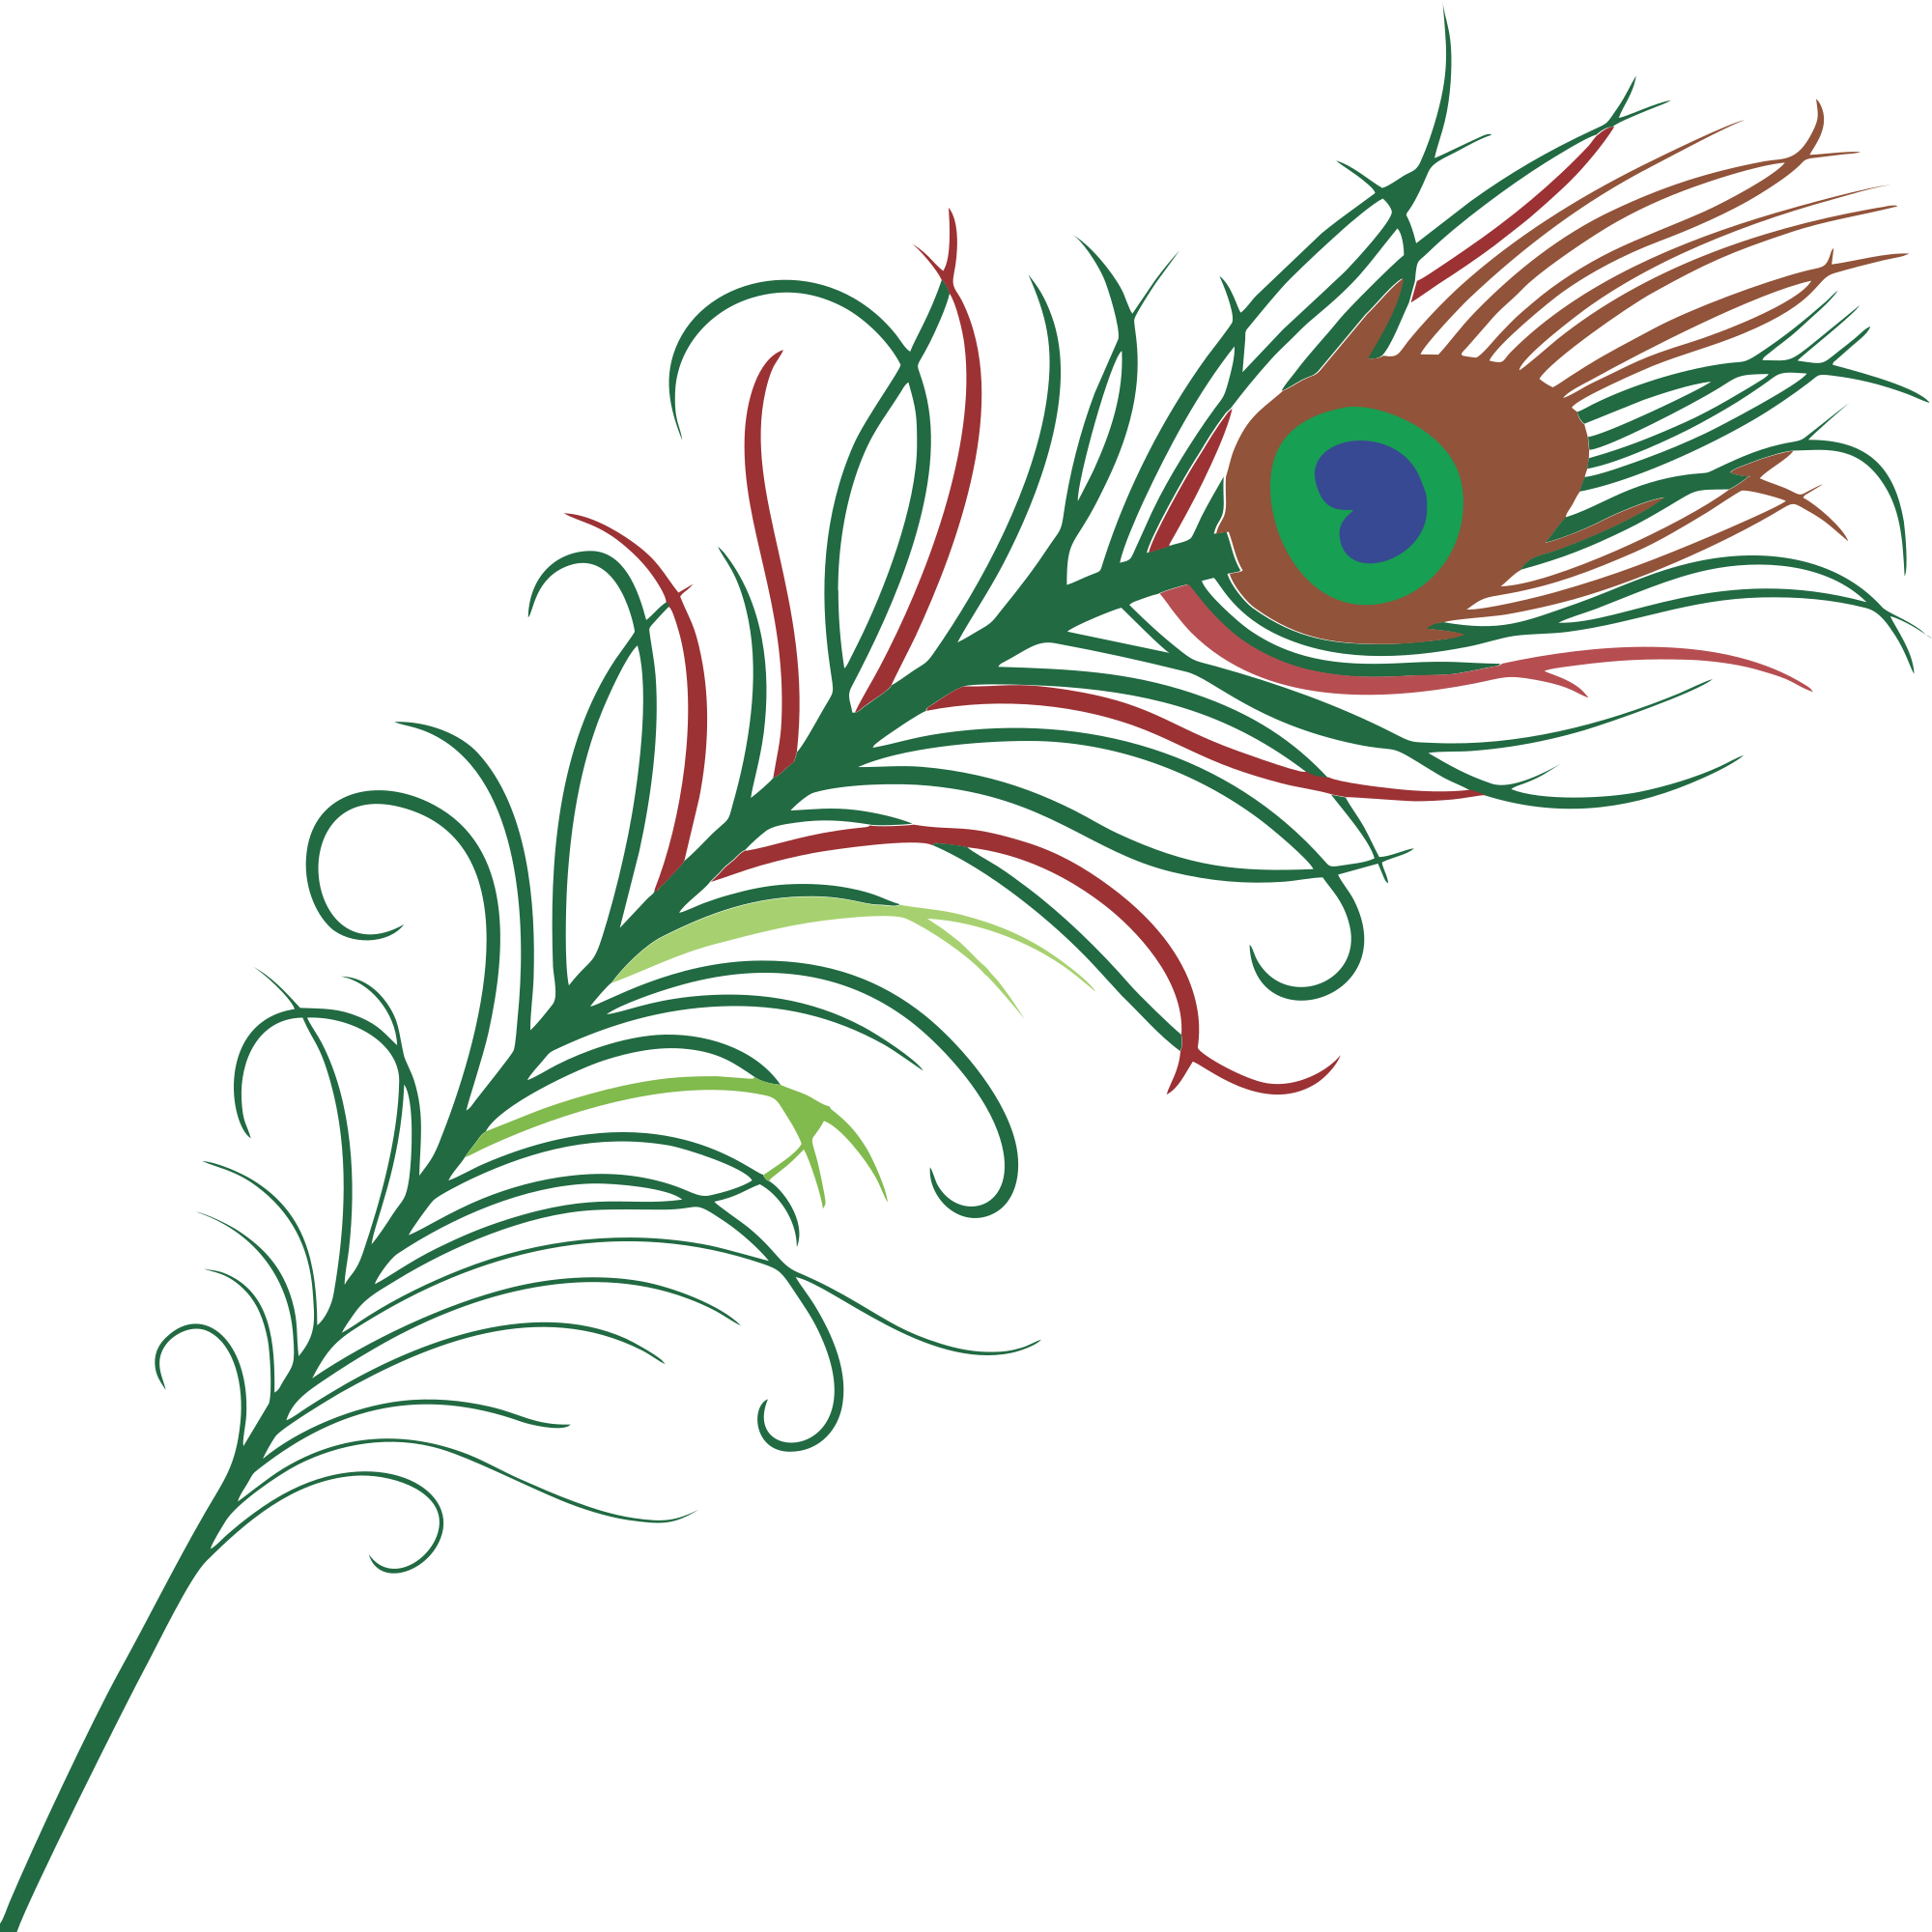 2000x2000 Peacock Feather Border Clipart Free Images Clipartix